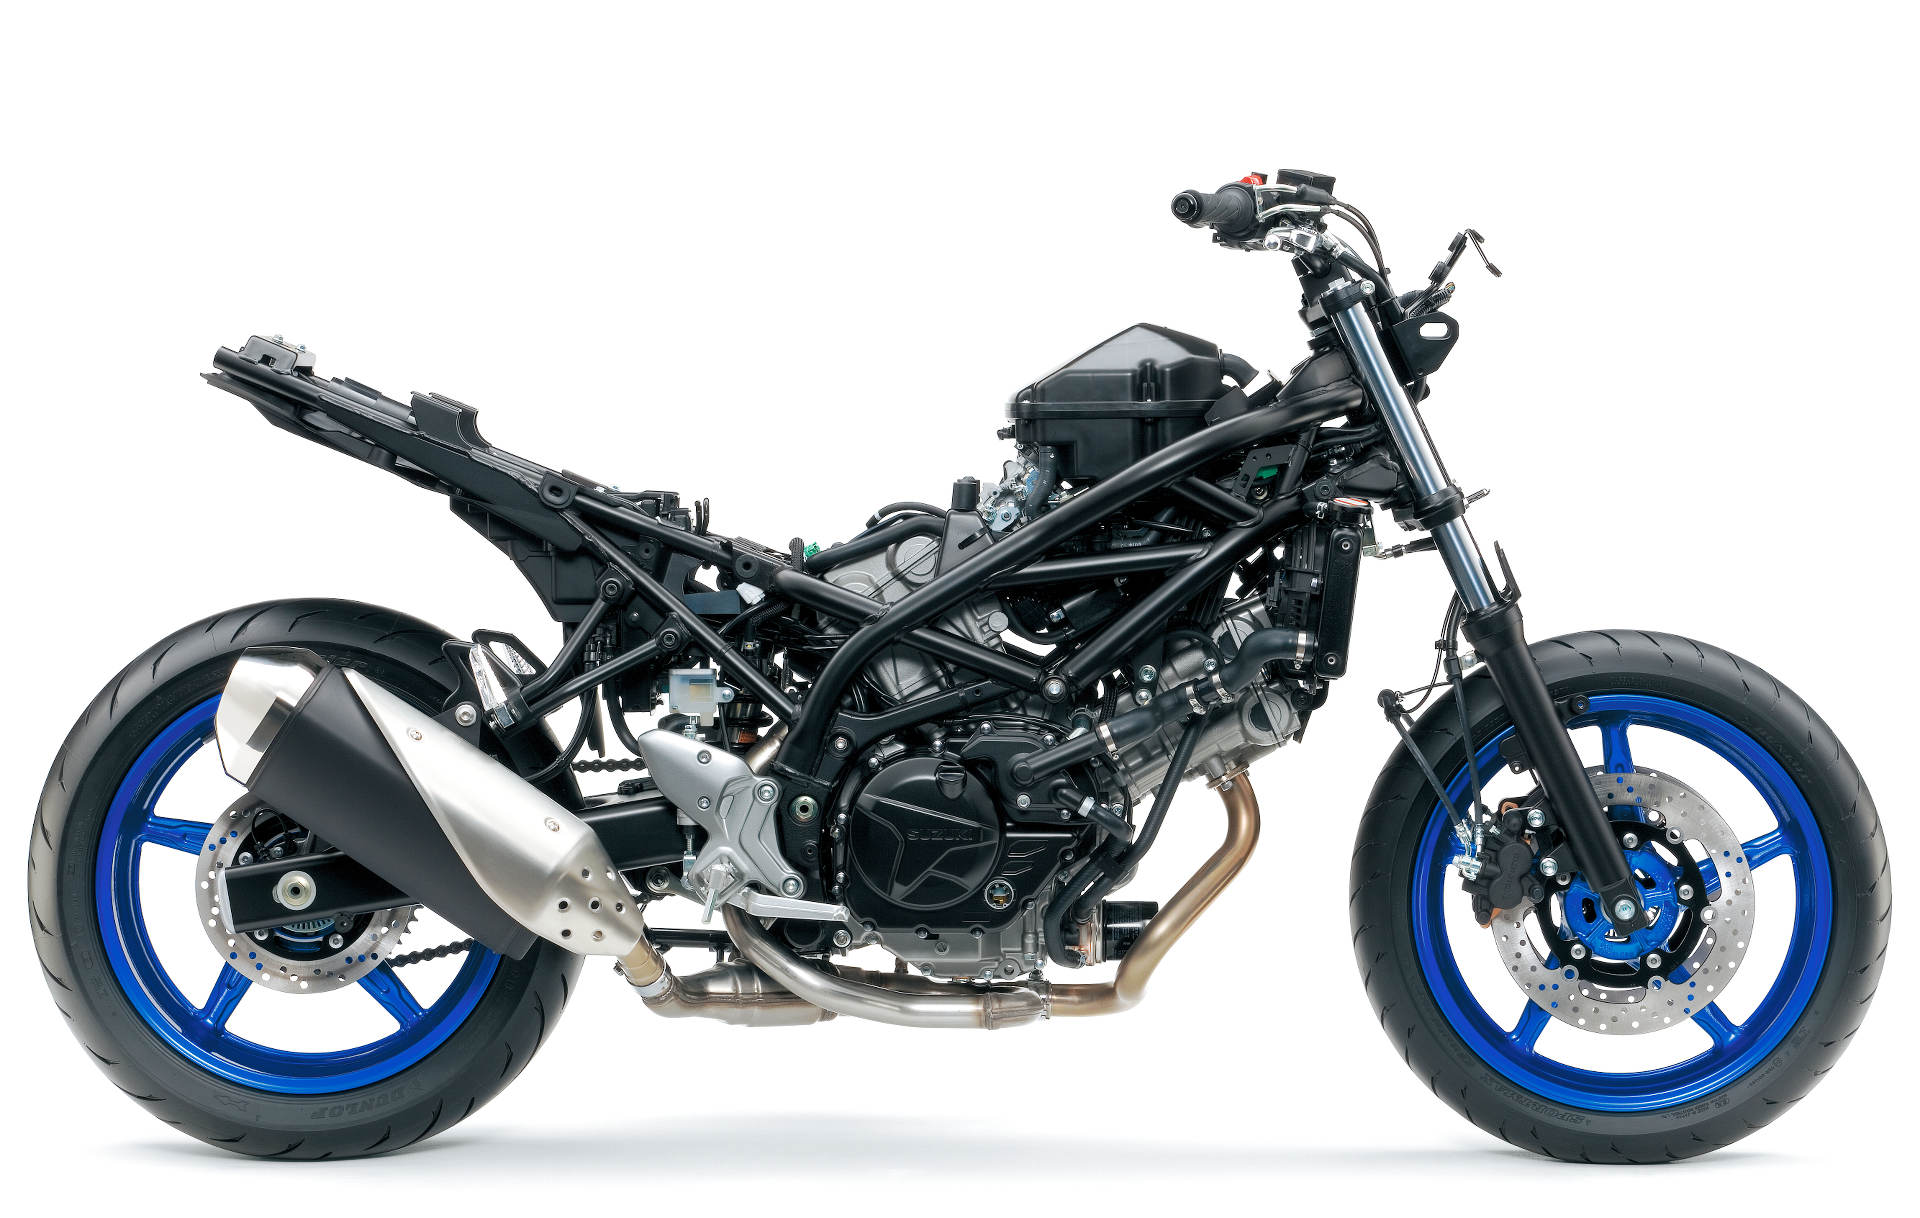 suzuki brings back the sv650 with more power and less weight